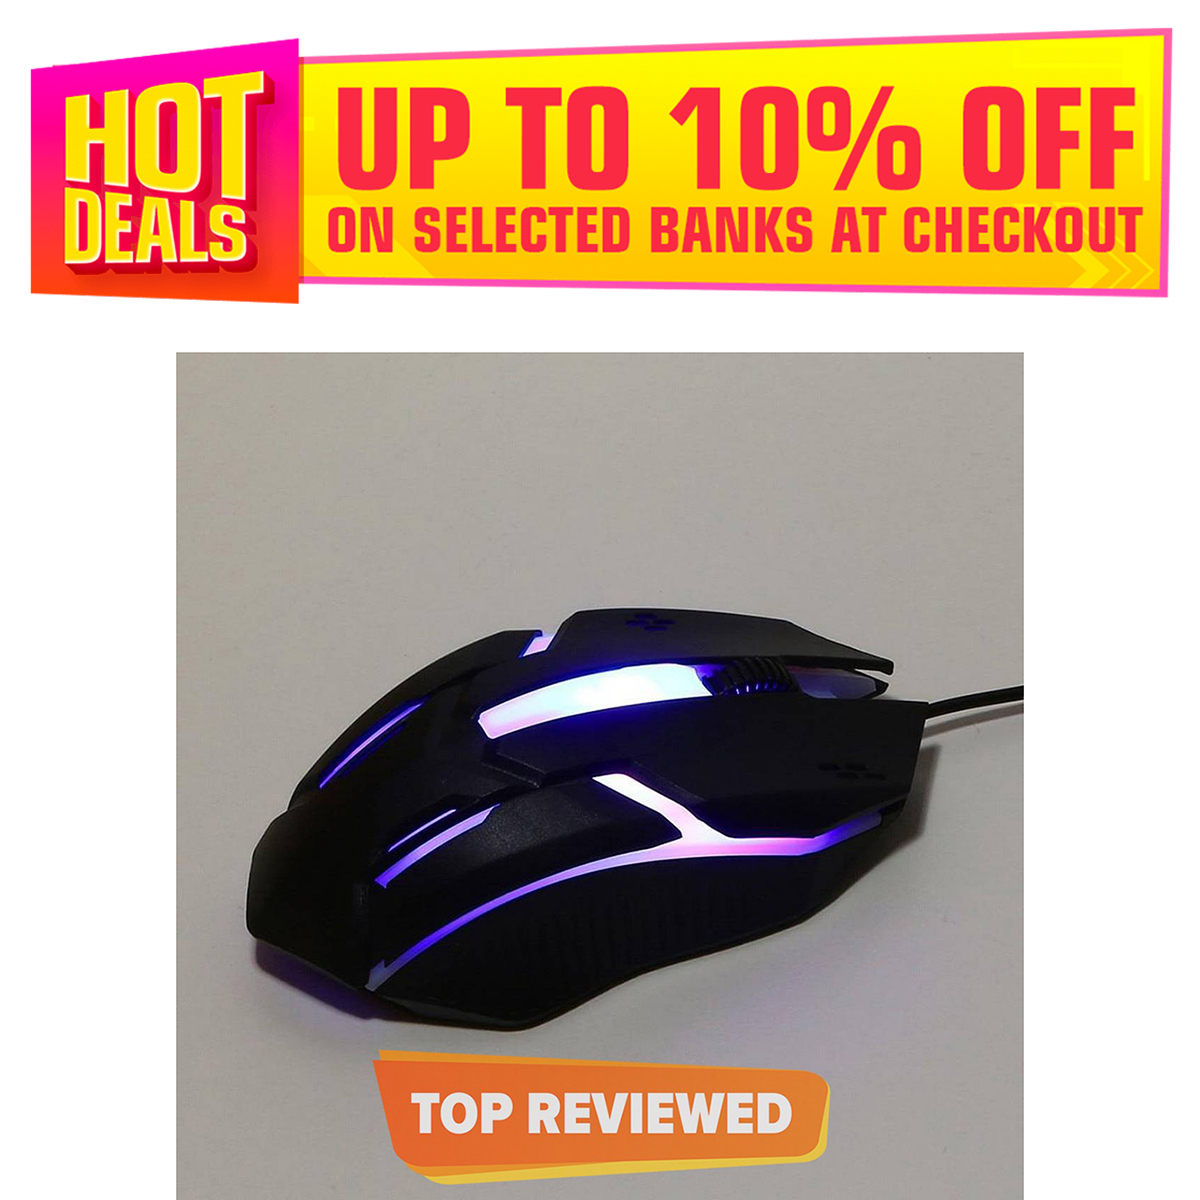 7 LED Gaming Mouse USB Wired Optical For PC Computer Laptop Pro RGB 7 LED Sensor Black 7 Colour LED Wired